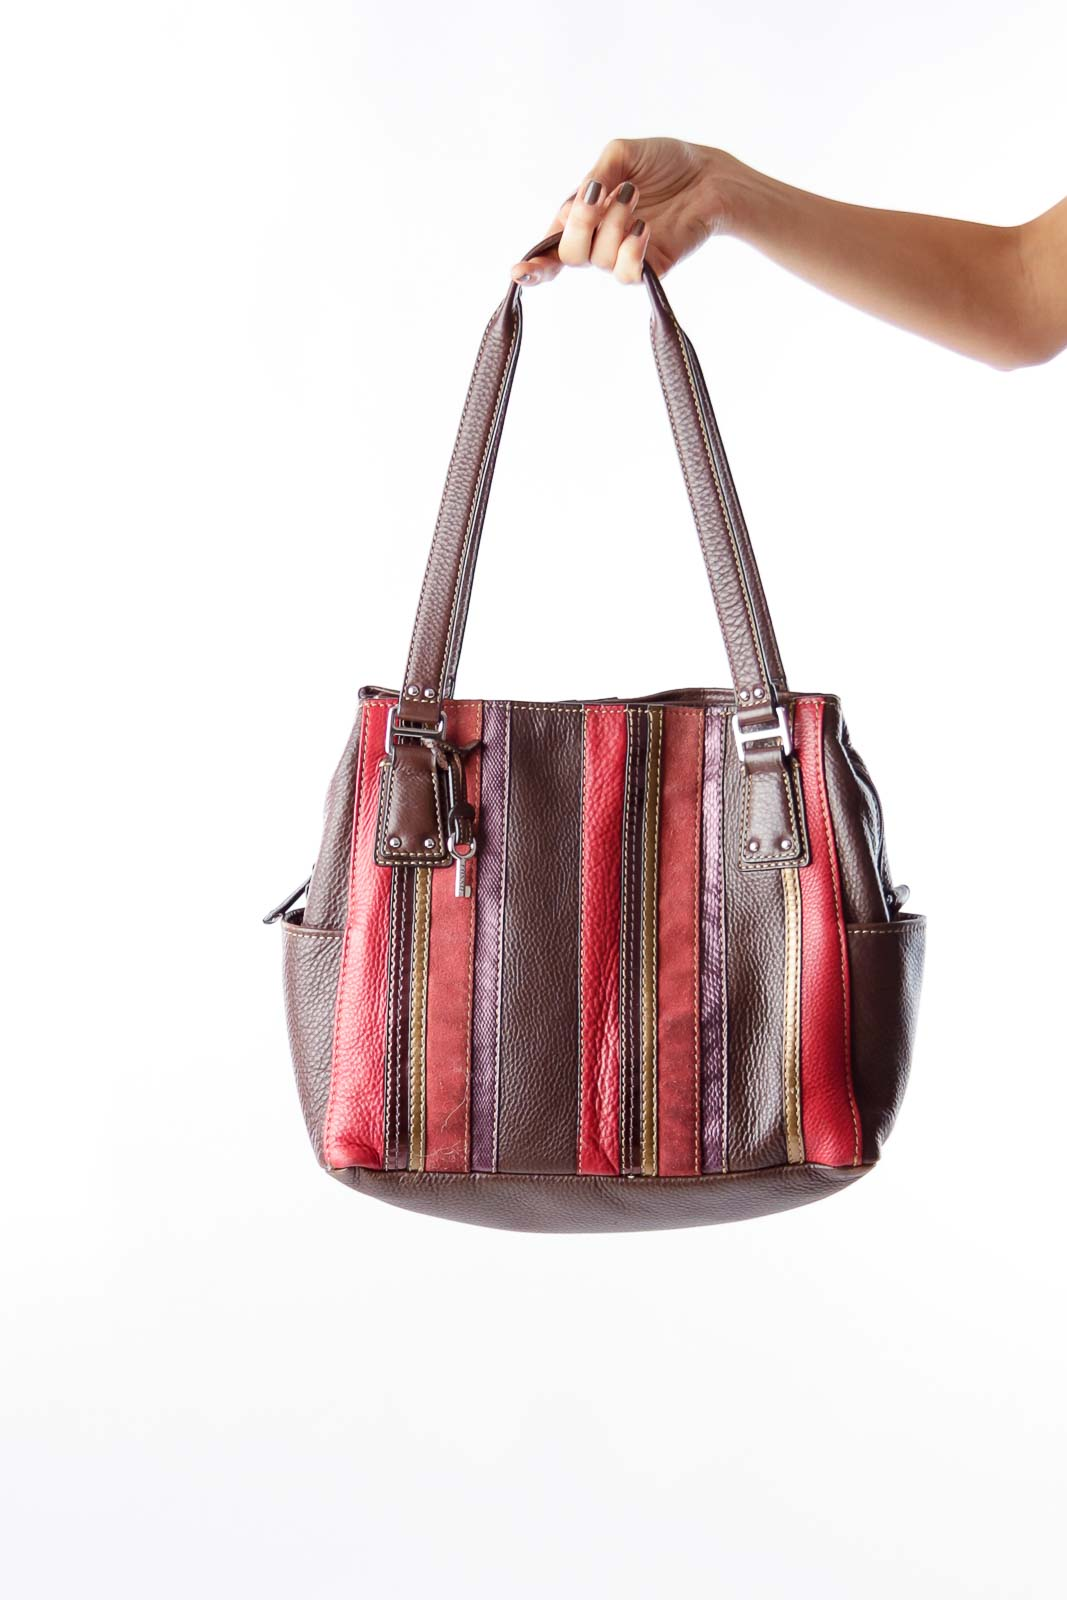 Brown Color Stripes Handbag Front